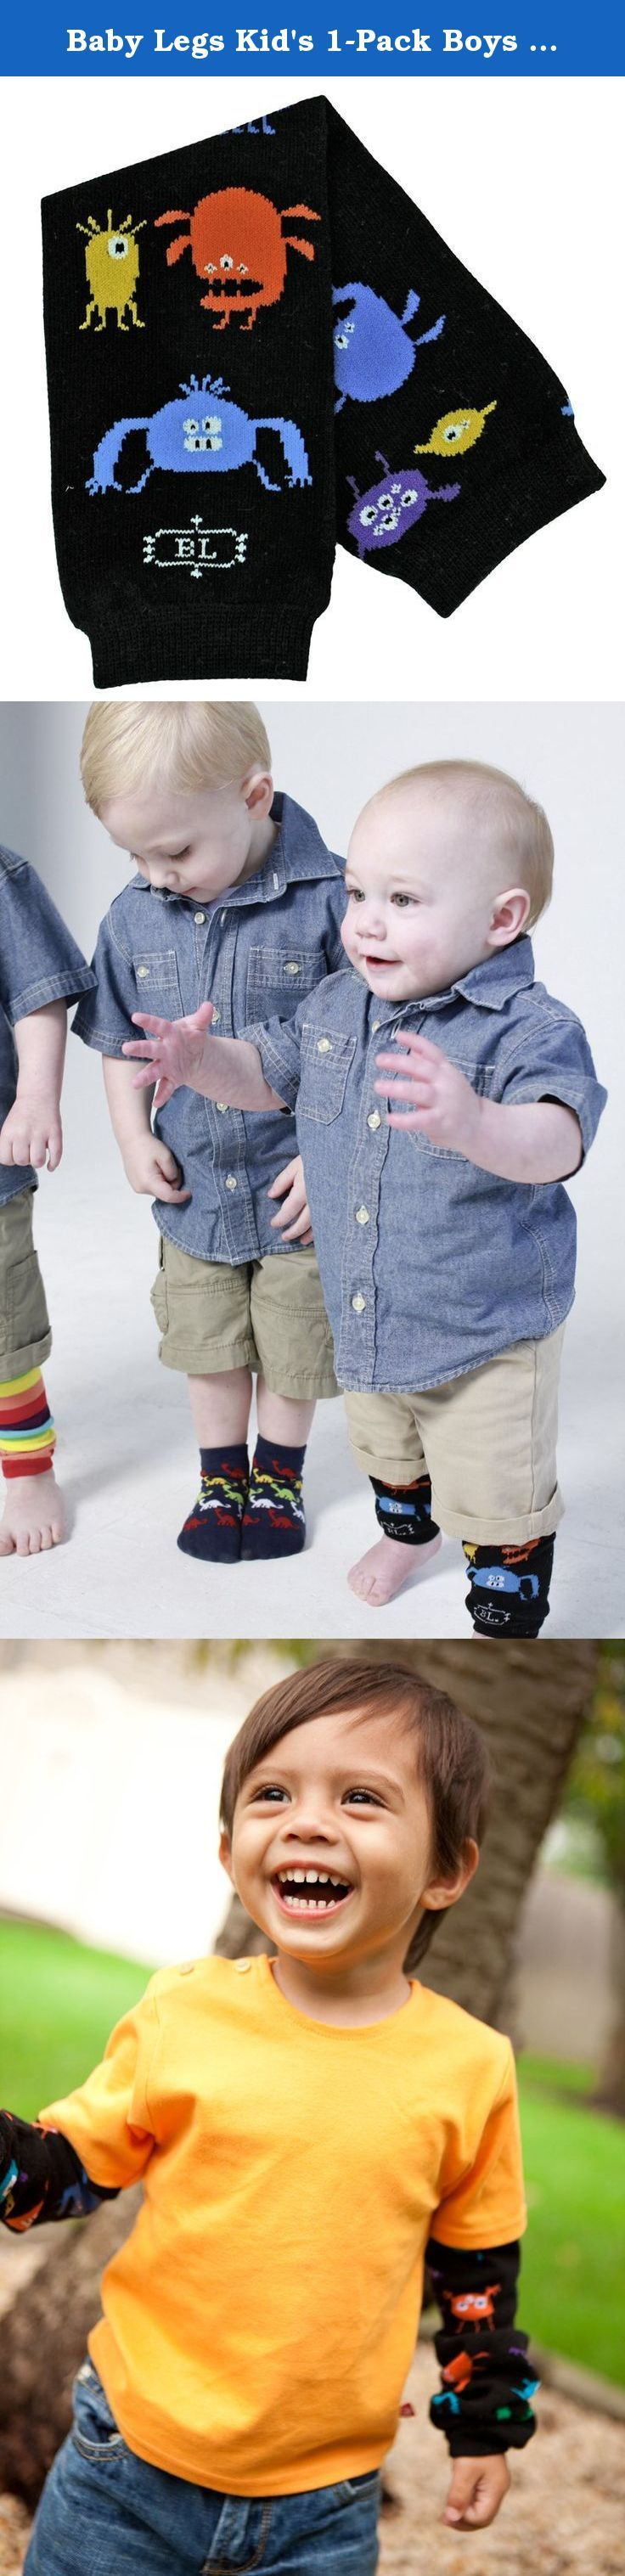 Baby Legs Kid's 1-Pack Boys Leg Warmer, Black Combo. Babylegs Leg WarmersBabylegs willMake diaper changes a breeze.Protect soft knees from harsh surfacesKeep legs warm year roundProvide light weight sun protectionMake Elimination Communication and potty training easierJazz up any dance class.Coordinate colors/prints with cloth diapers.Make a fun fashion statement with styles for every occasion!One size fits most.Thanks Mama offers a wide variety of cloth diapers cloth diaper covers and...